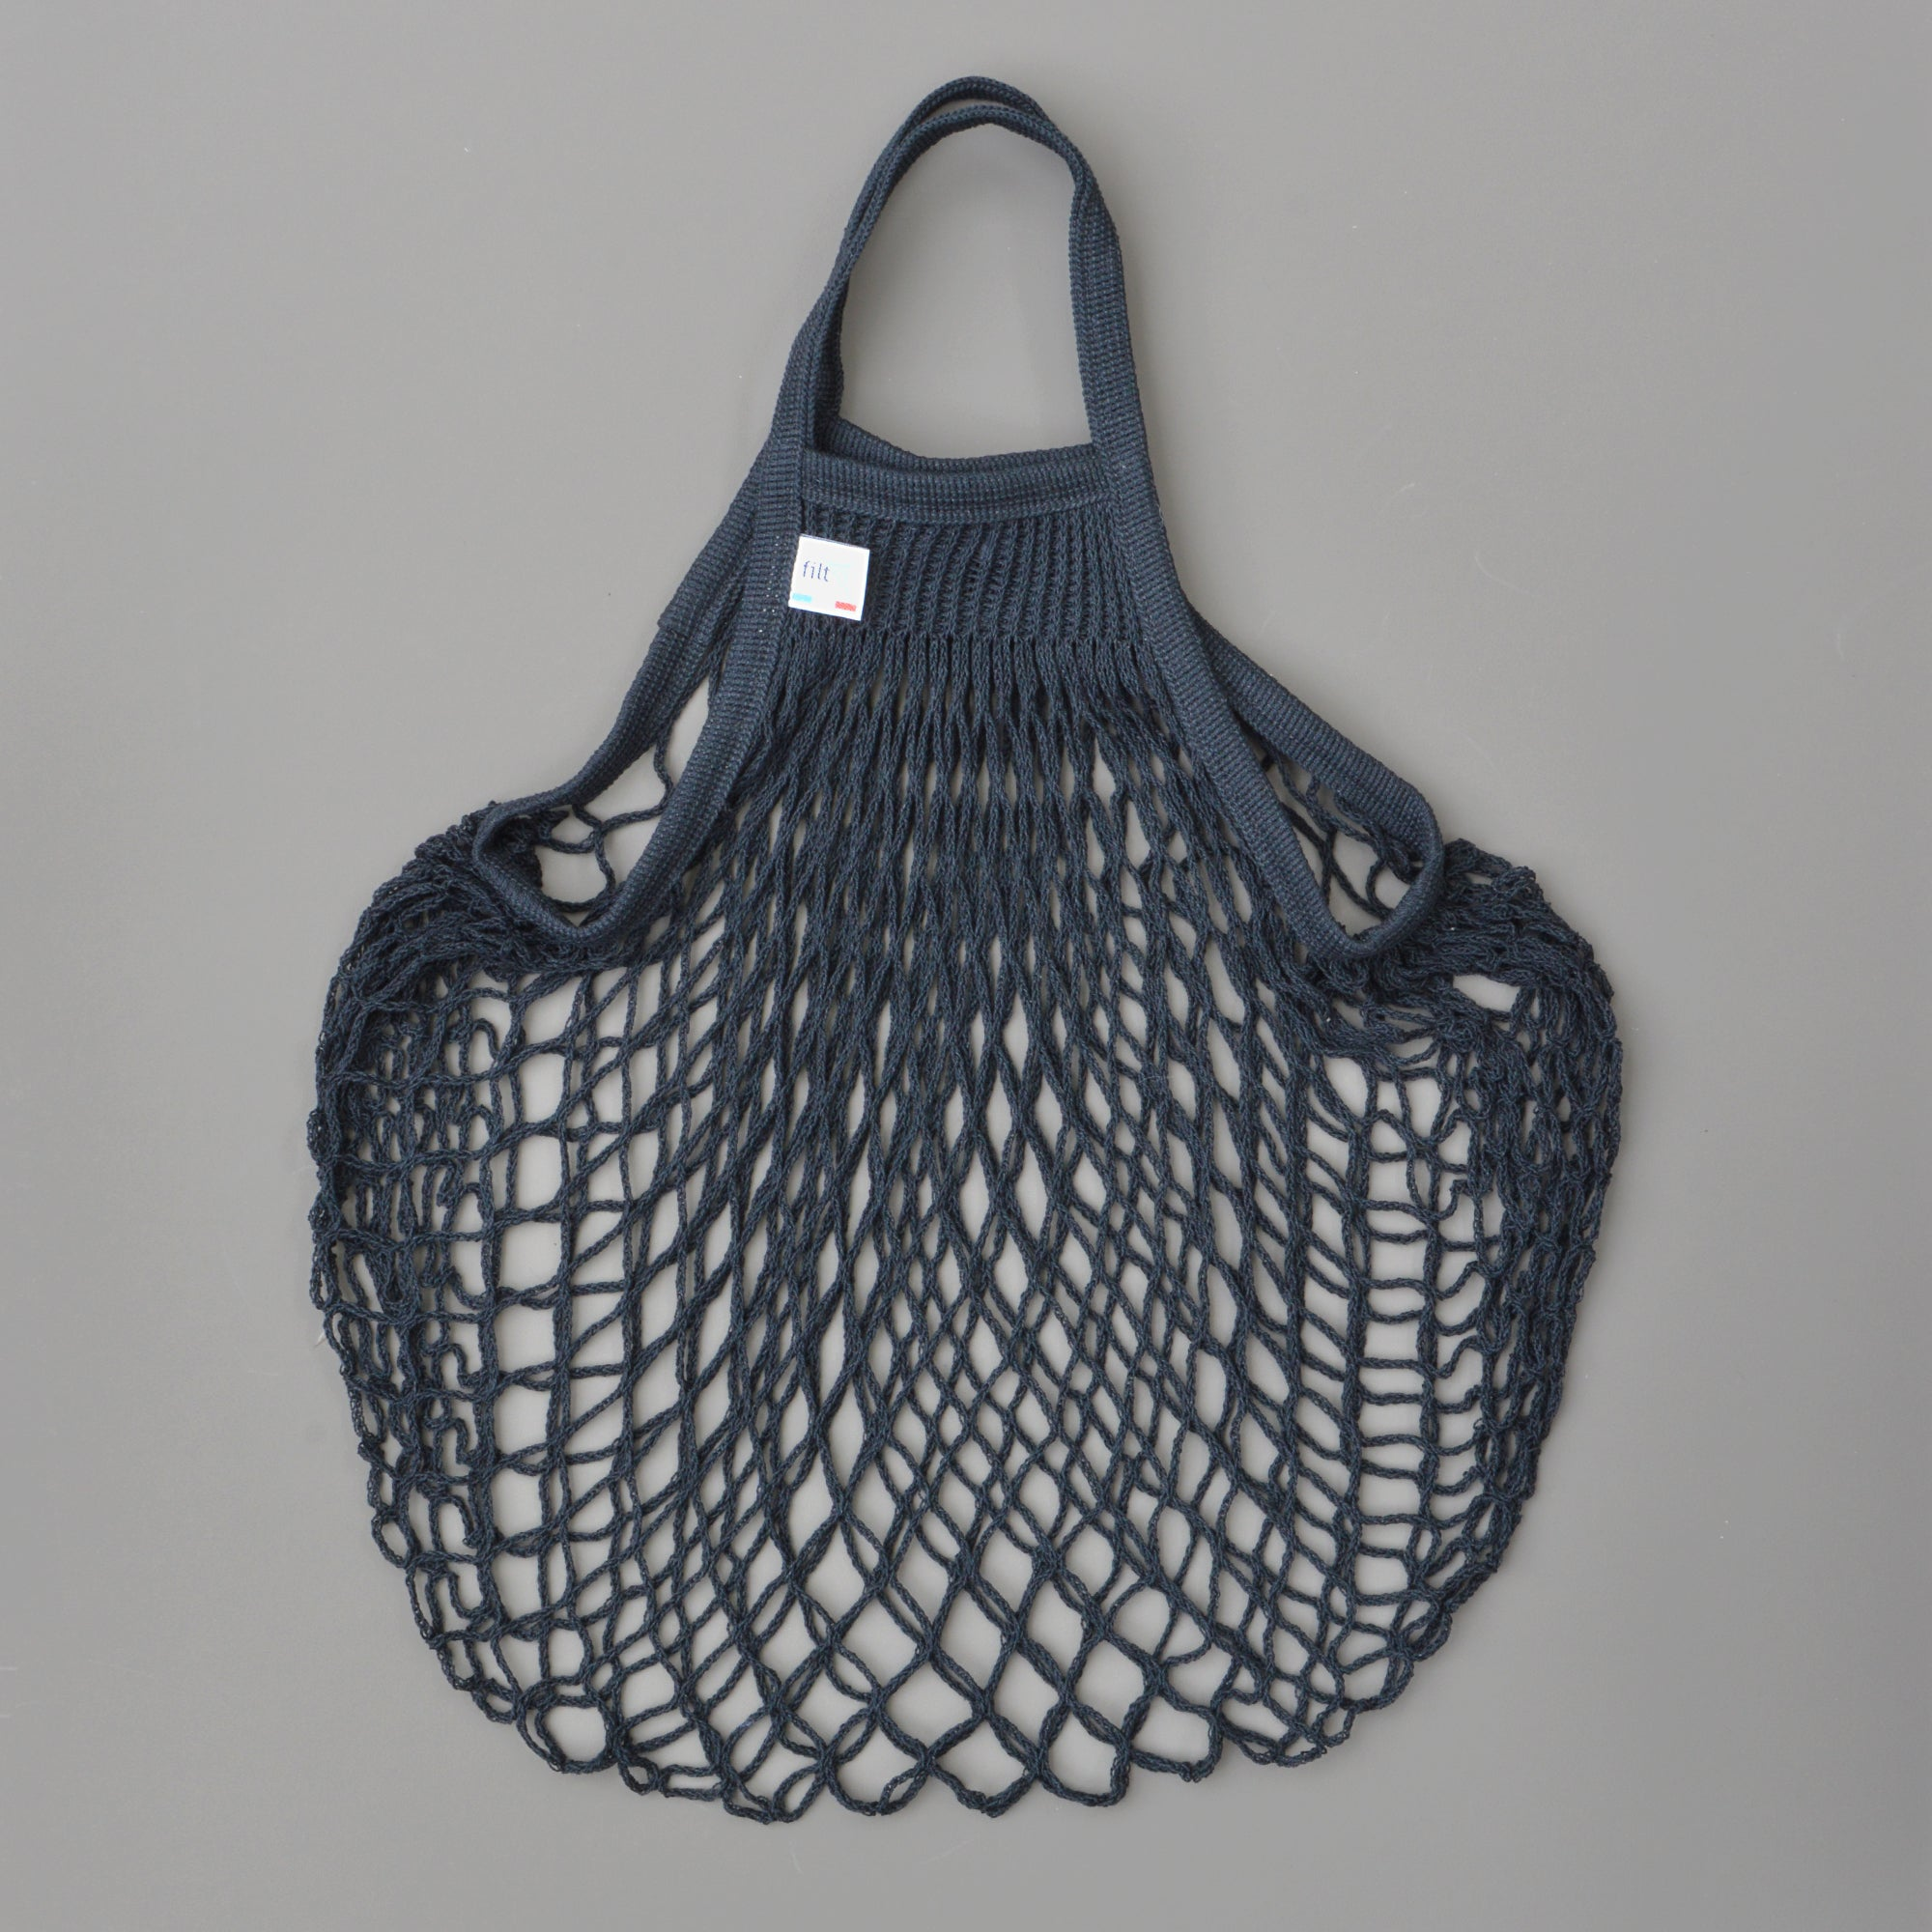 French String Bag - Black